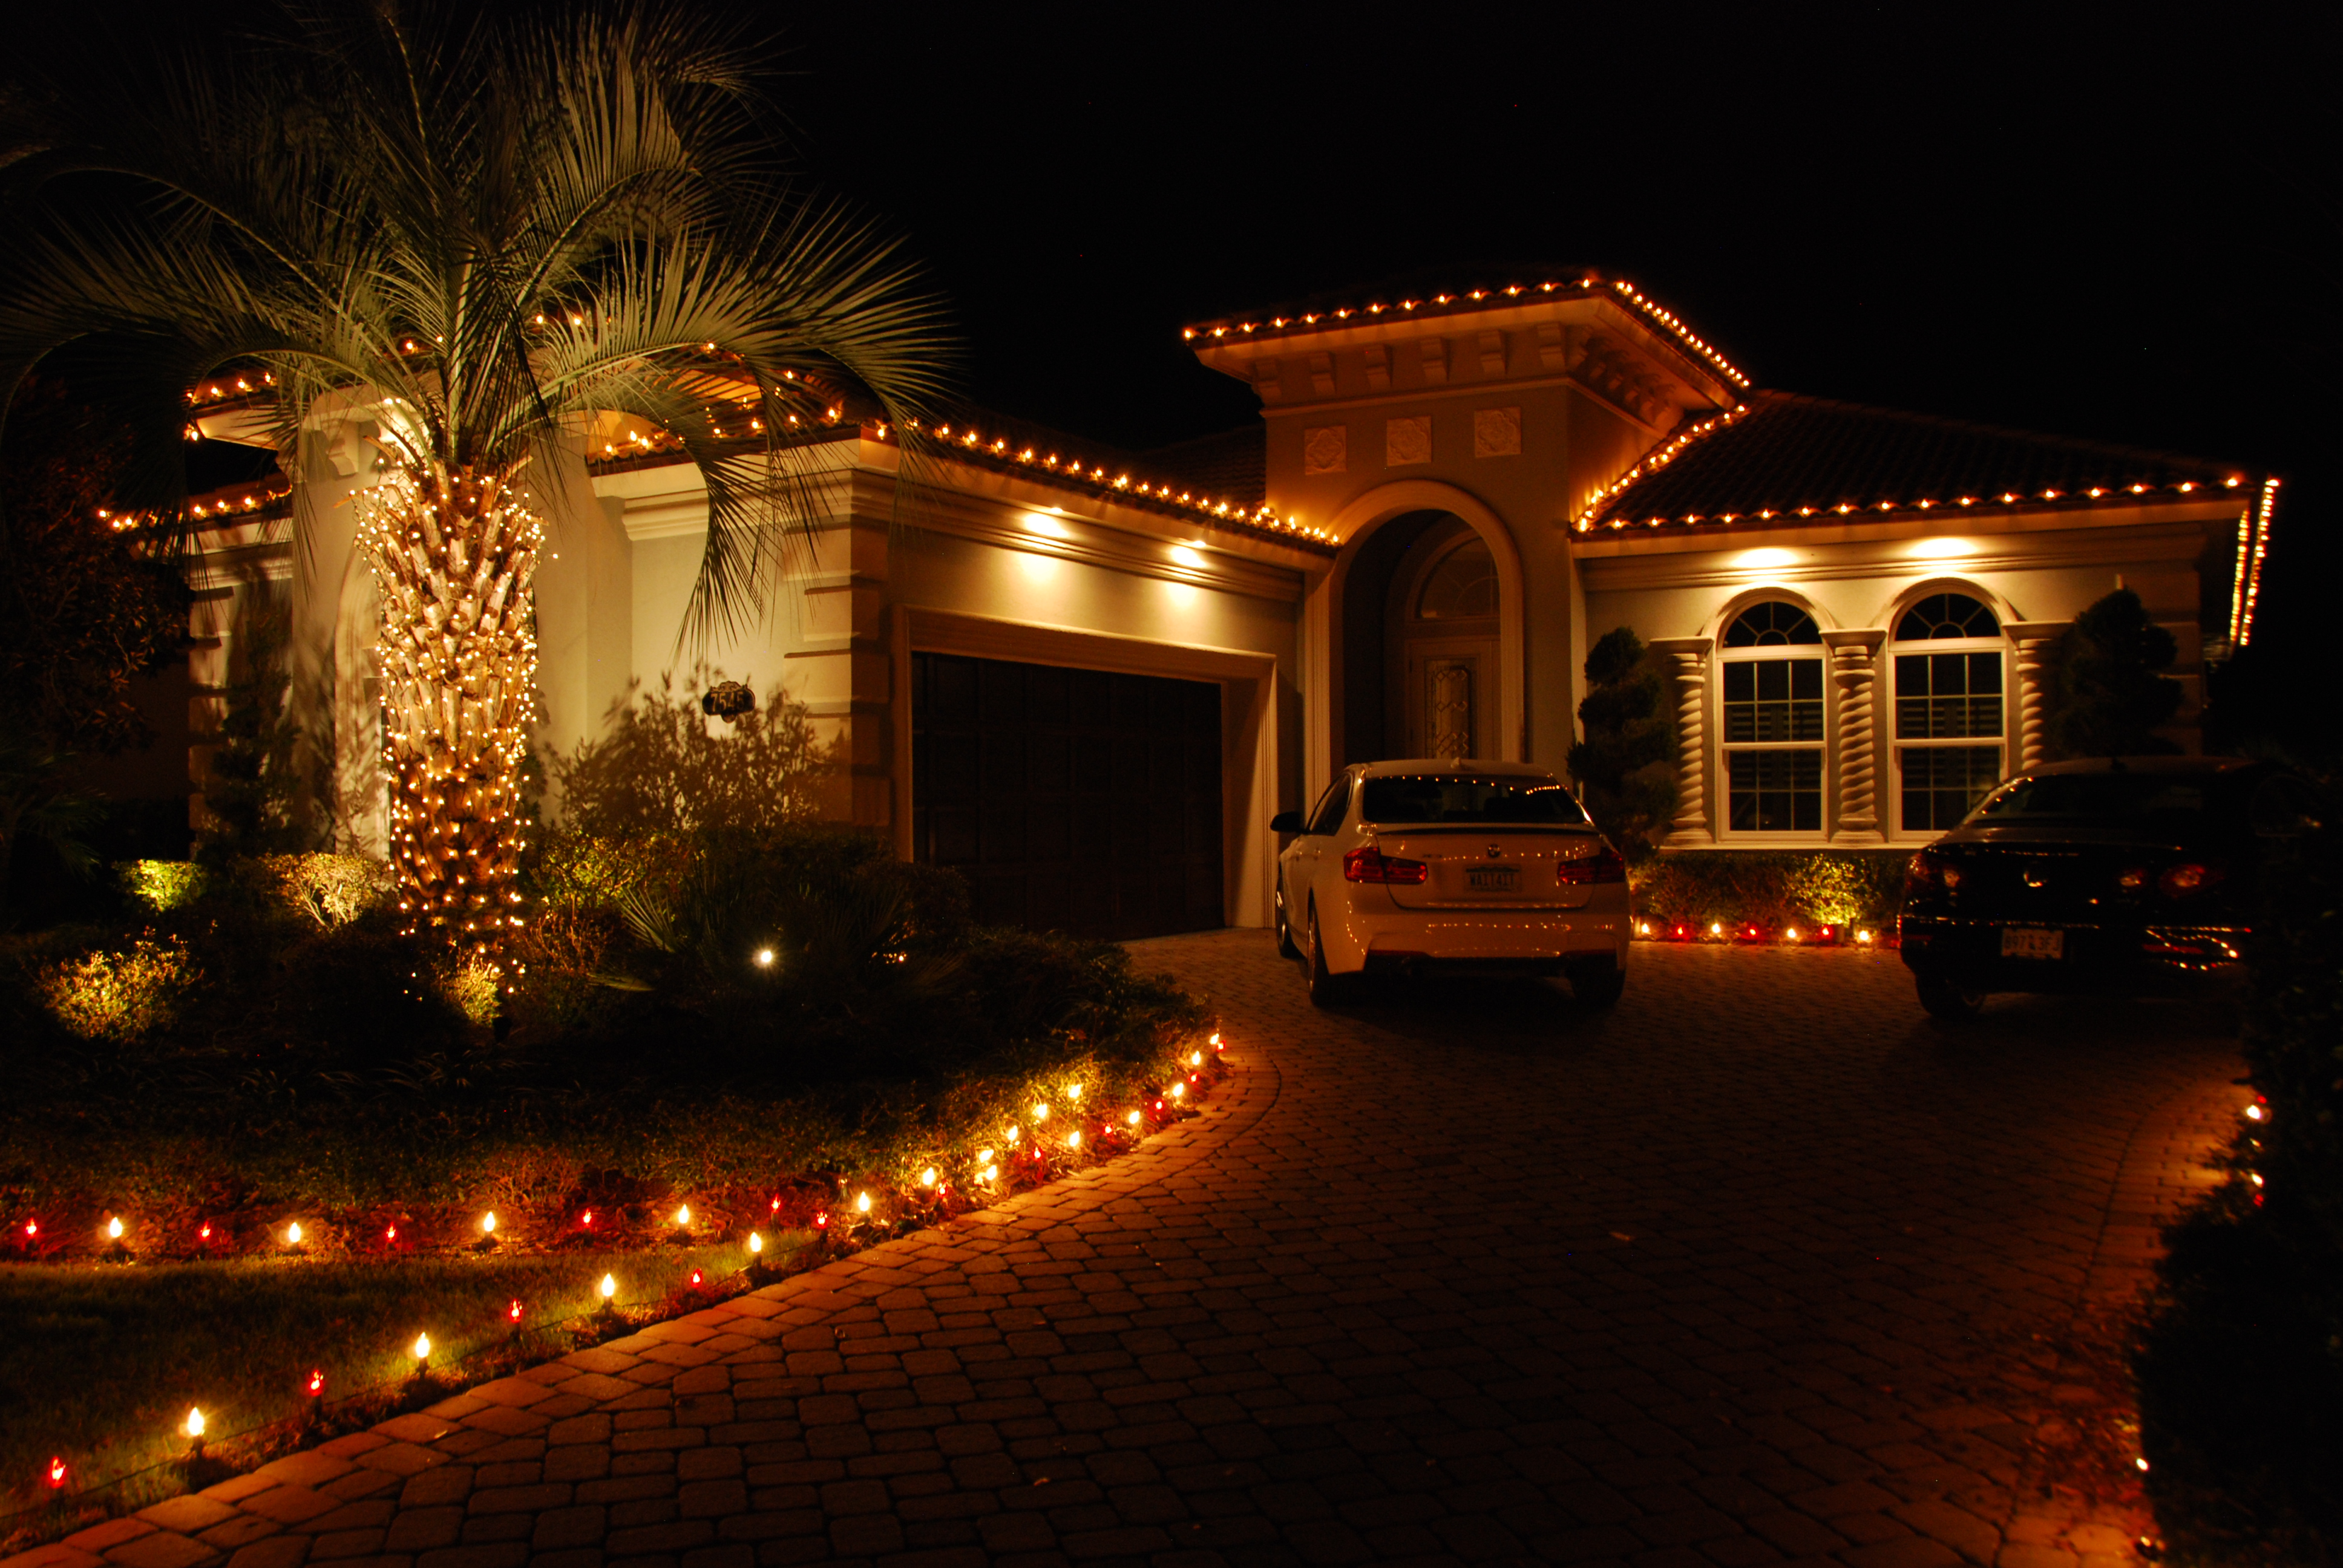 how do i install christmas lights on tile roofs - Install Christmas Lights